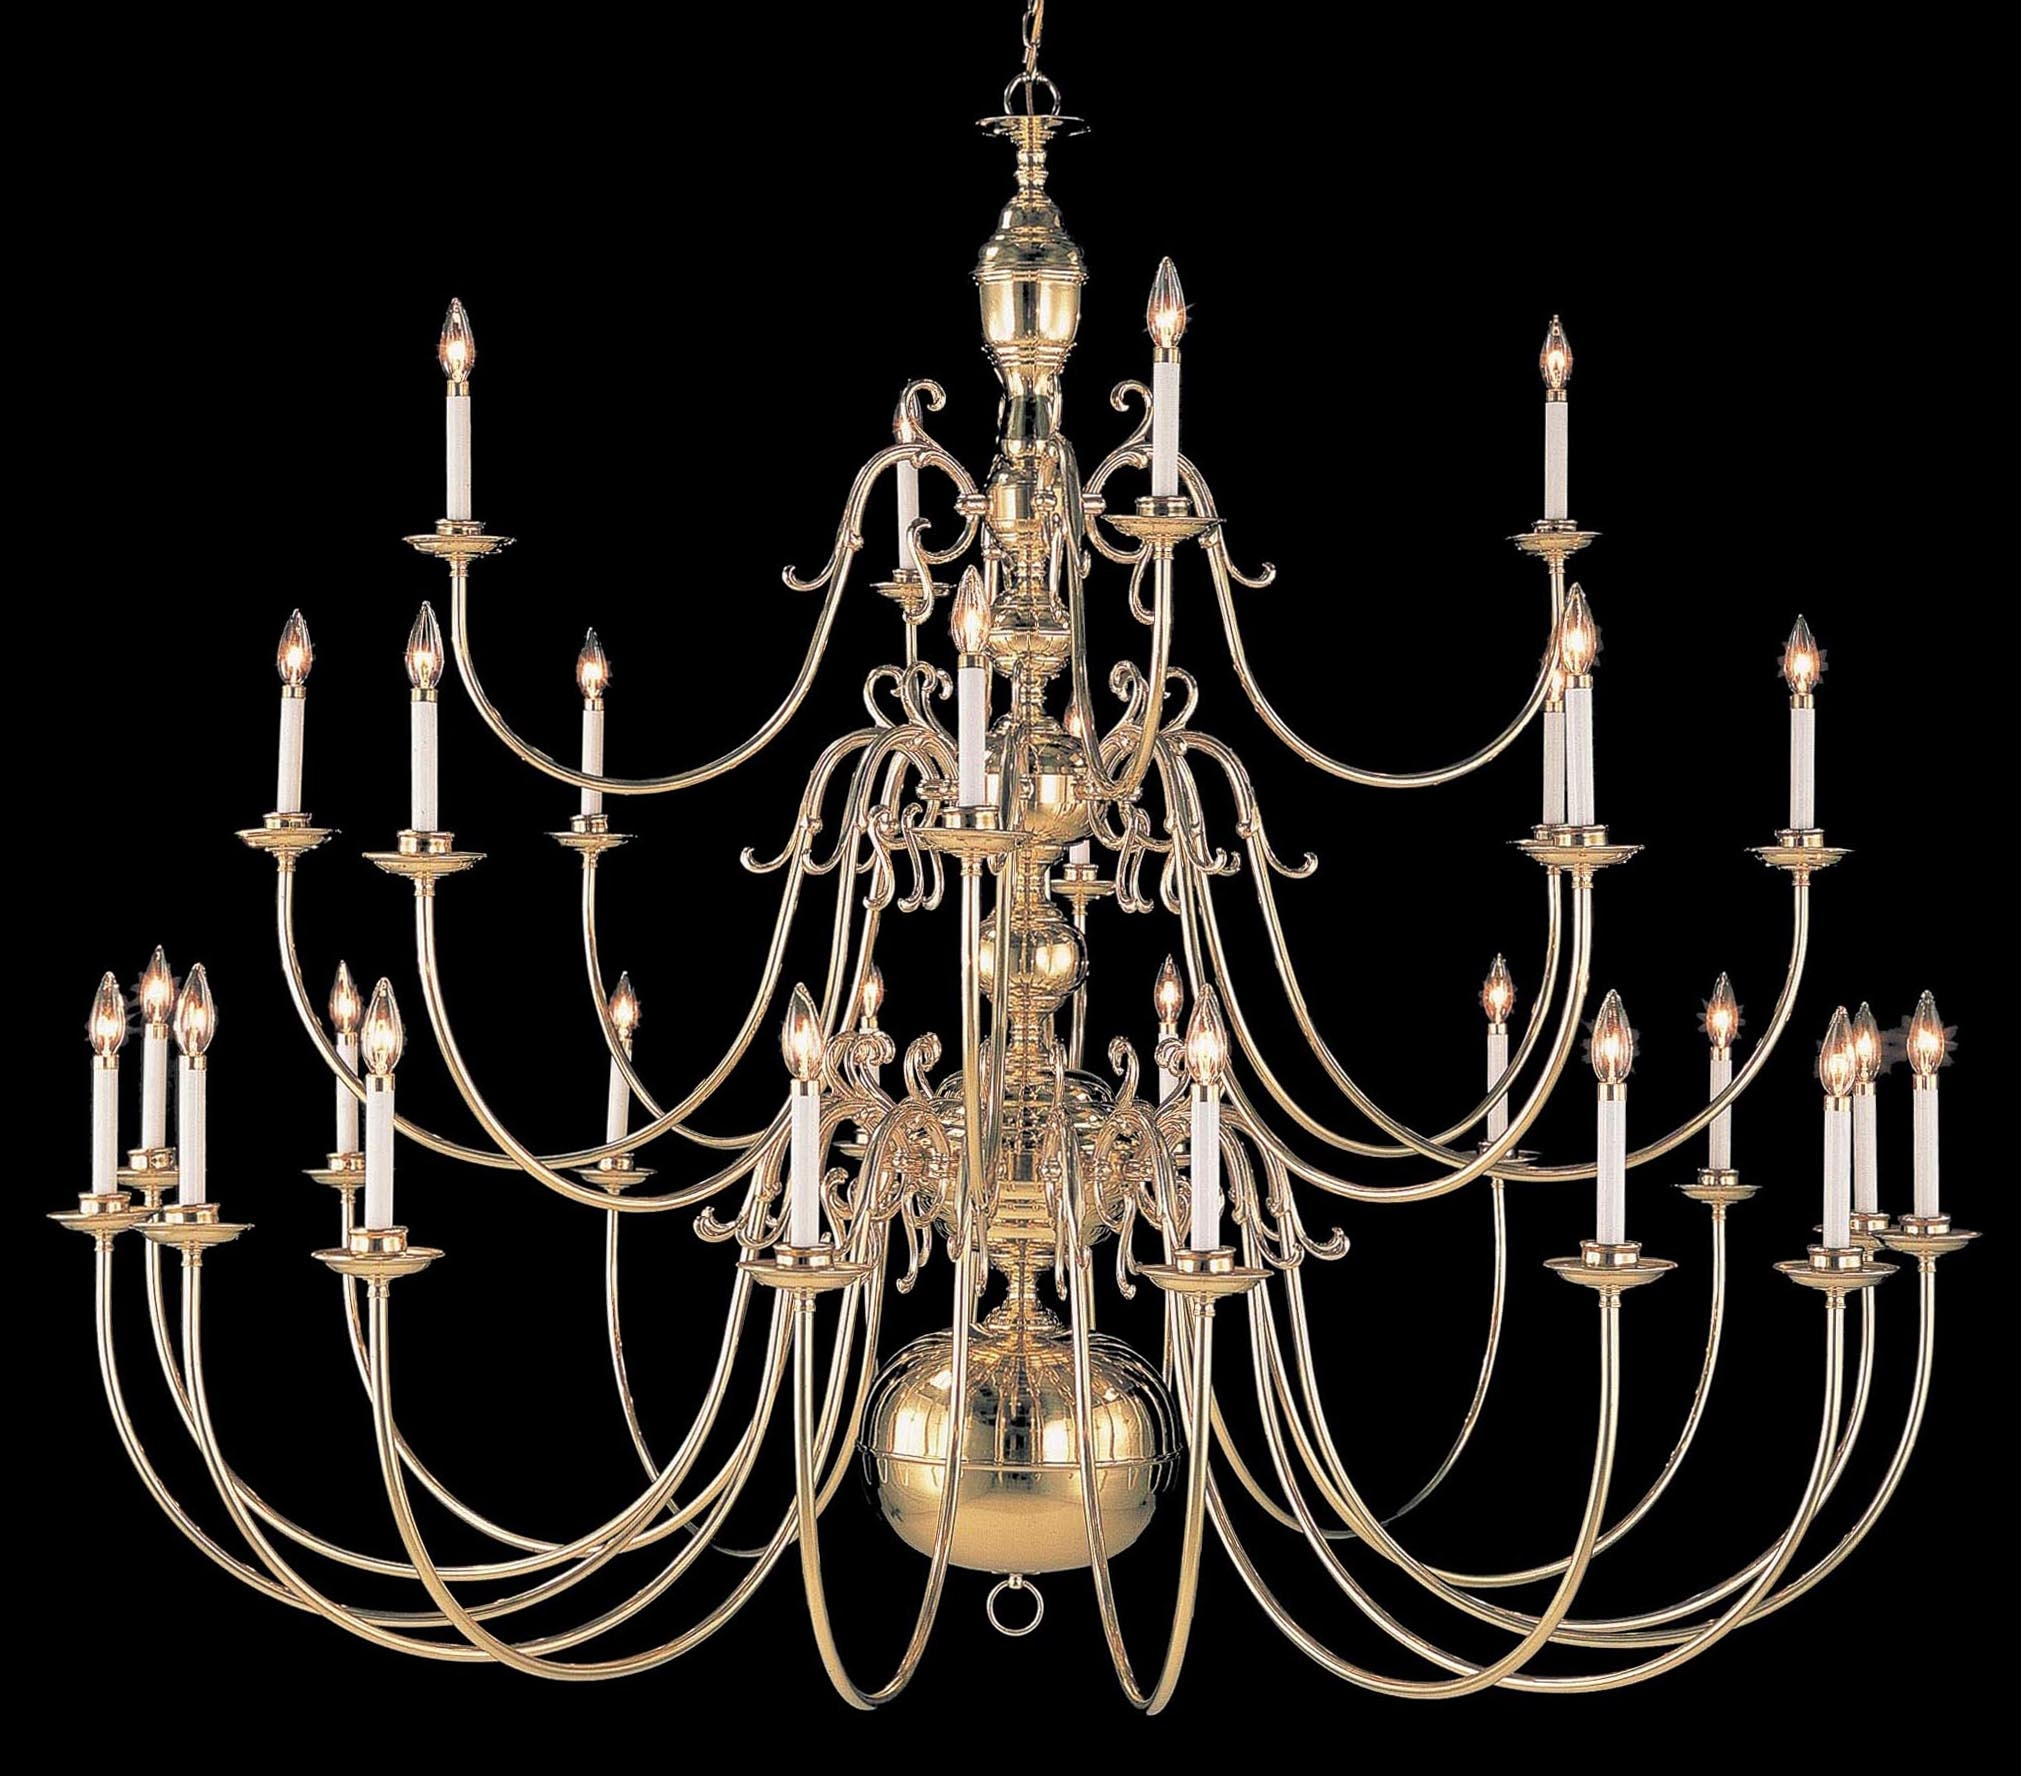 Largelighting Brassbronze Chandeliers With Regard To Large Brass Chandelier 6 Of 12